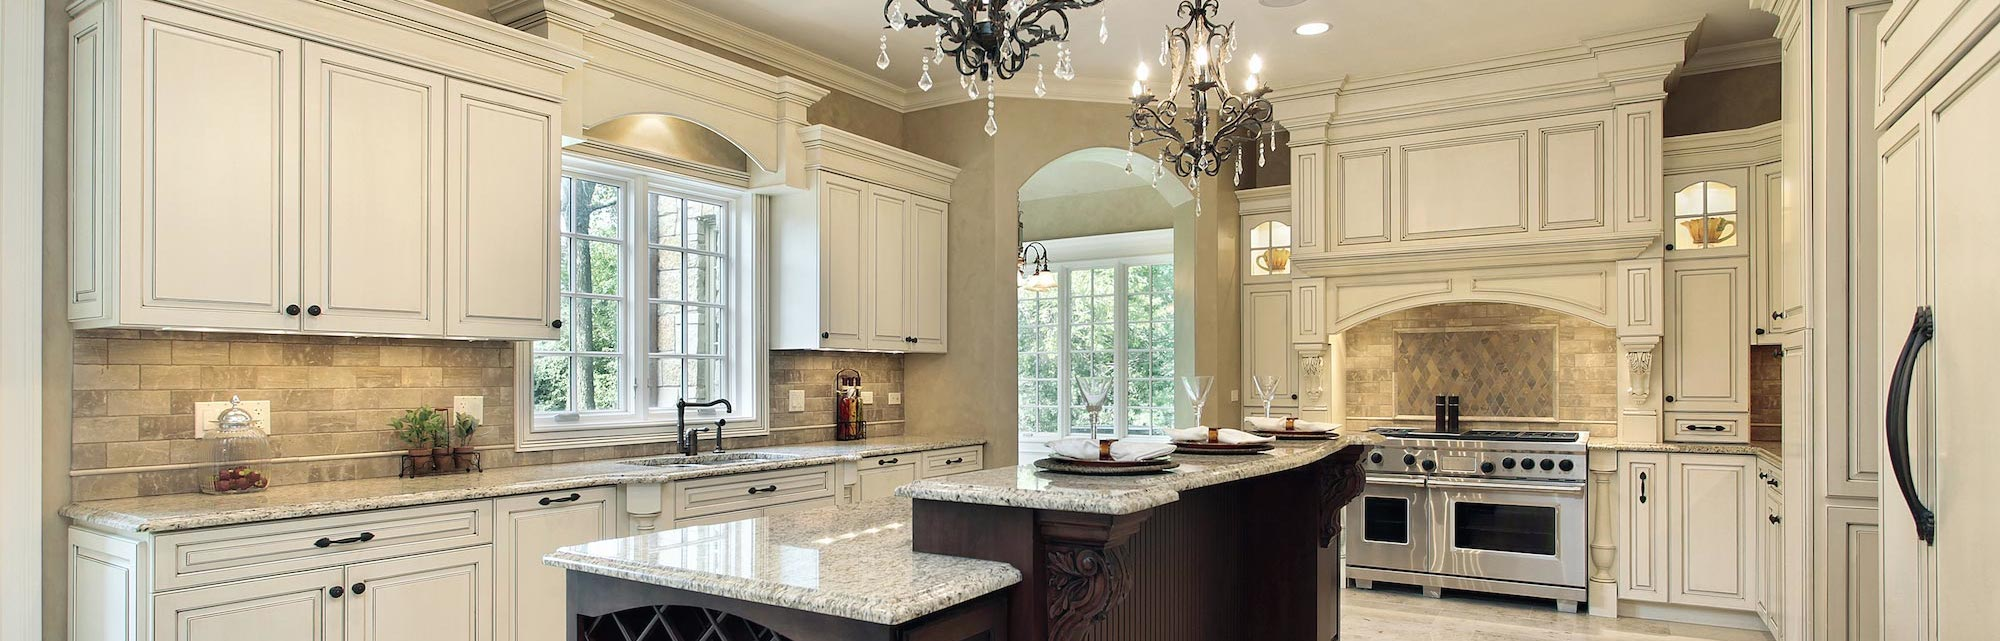 Brightwaters Cabinets Long Island Ny Kitchen Cabinets Long Island